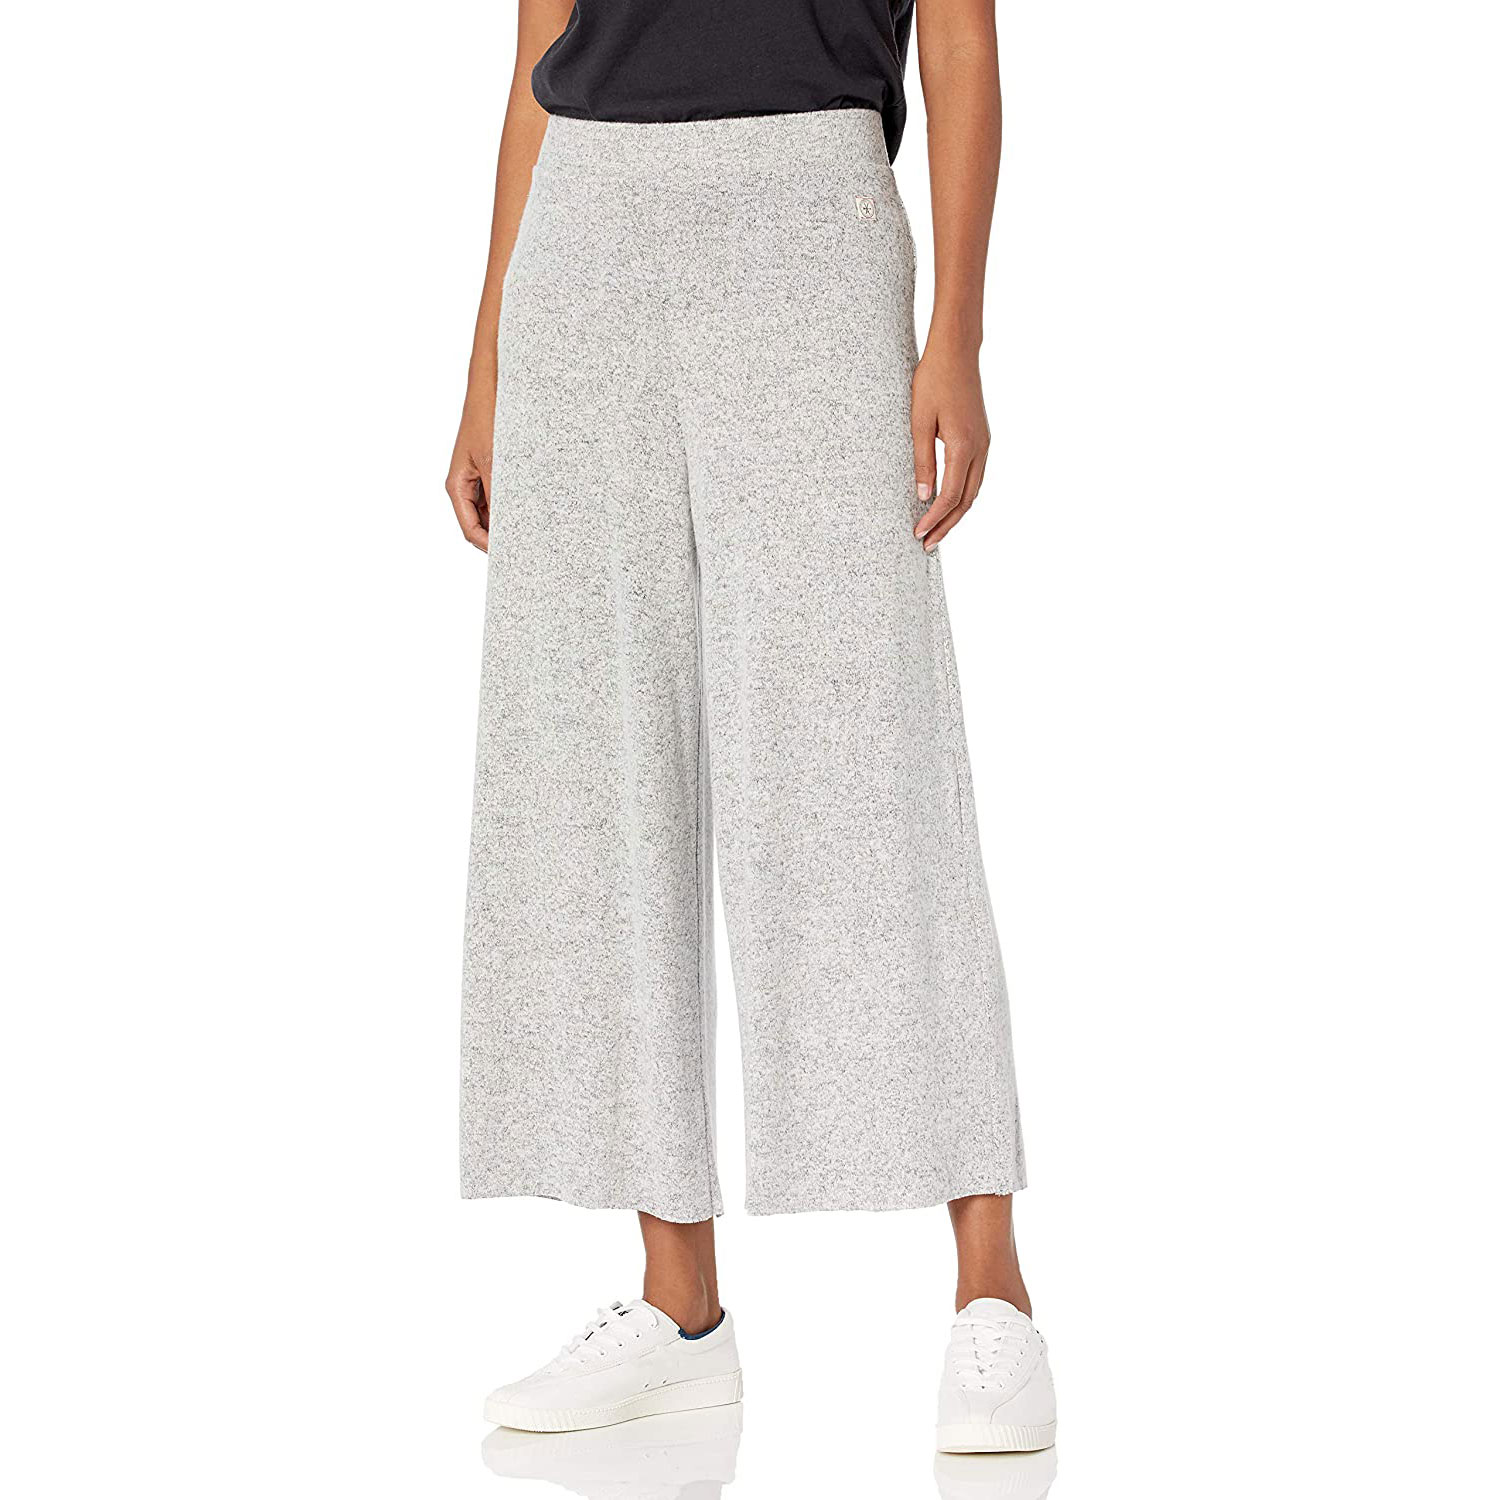 vintage america blues women's misses strength high-rise wide knit pant